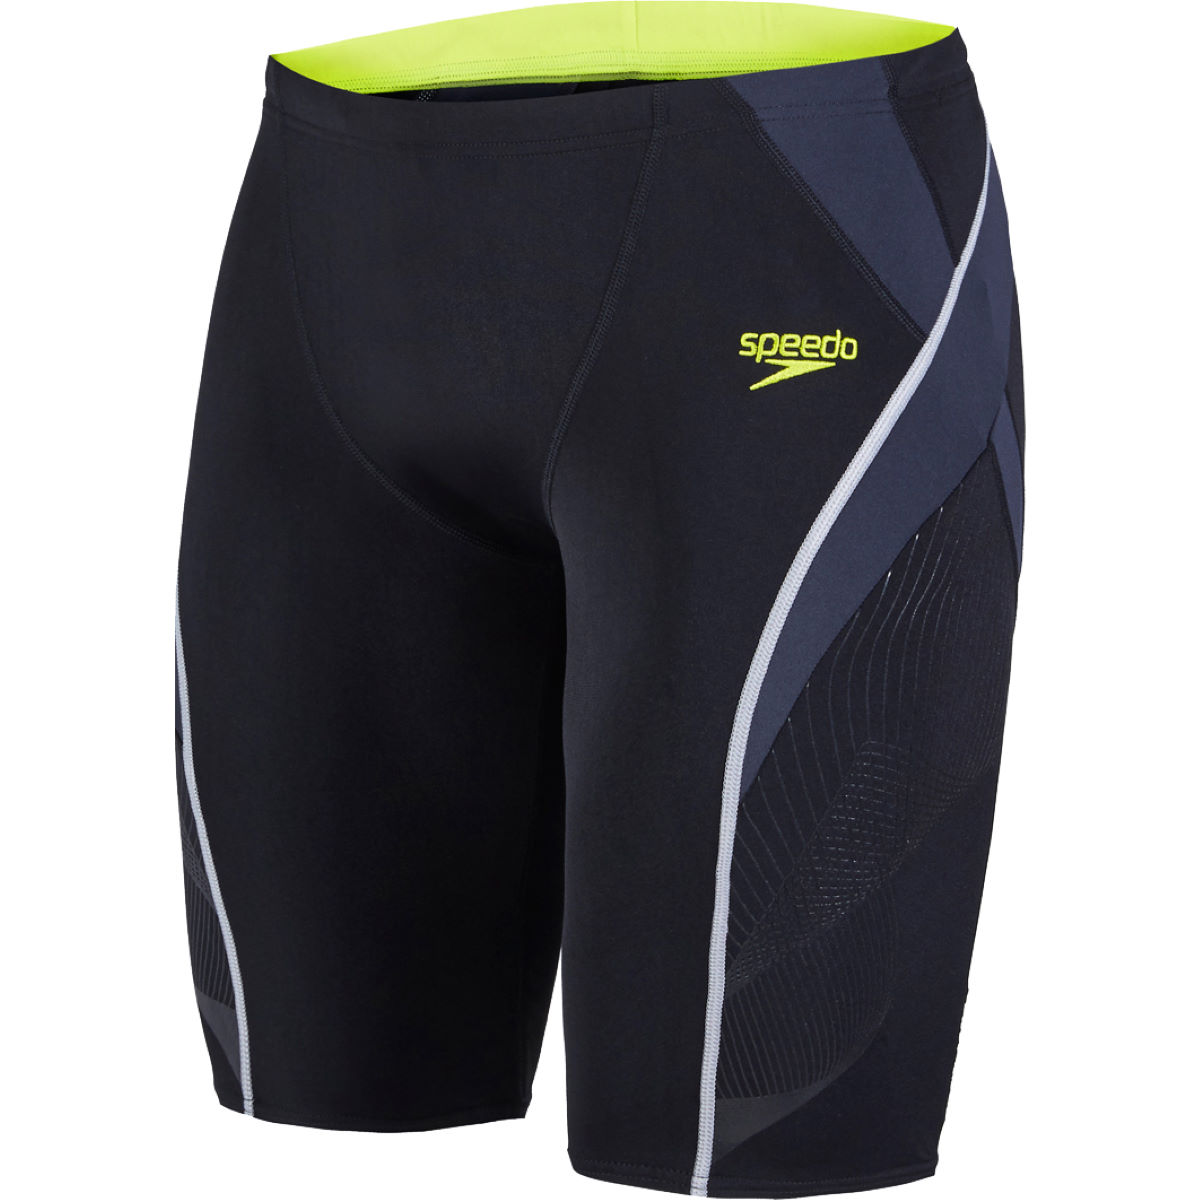 Speedo Fit Splice Jammer (AW16)